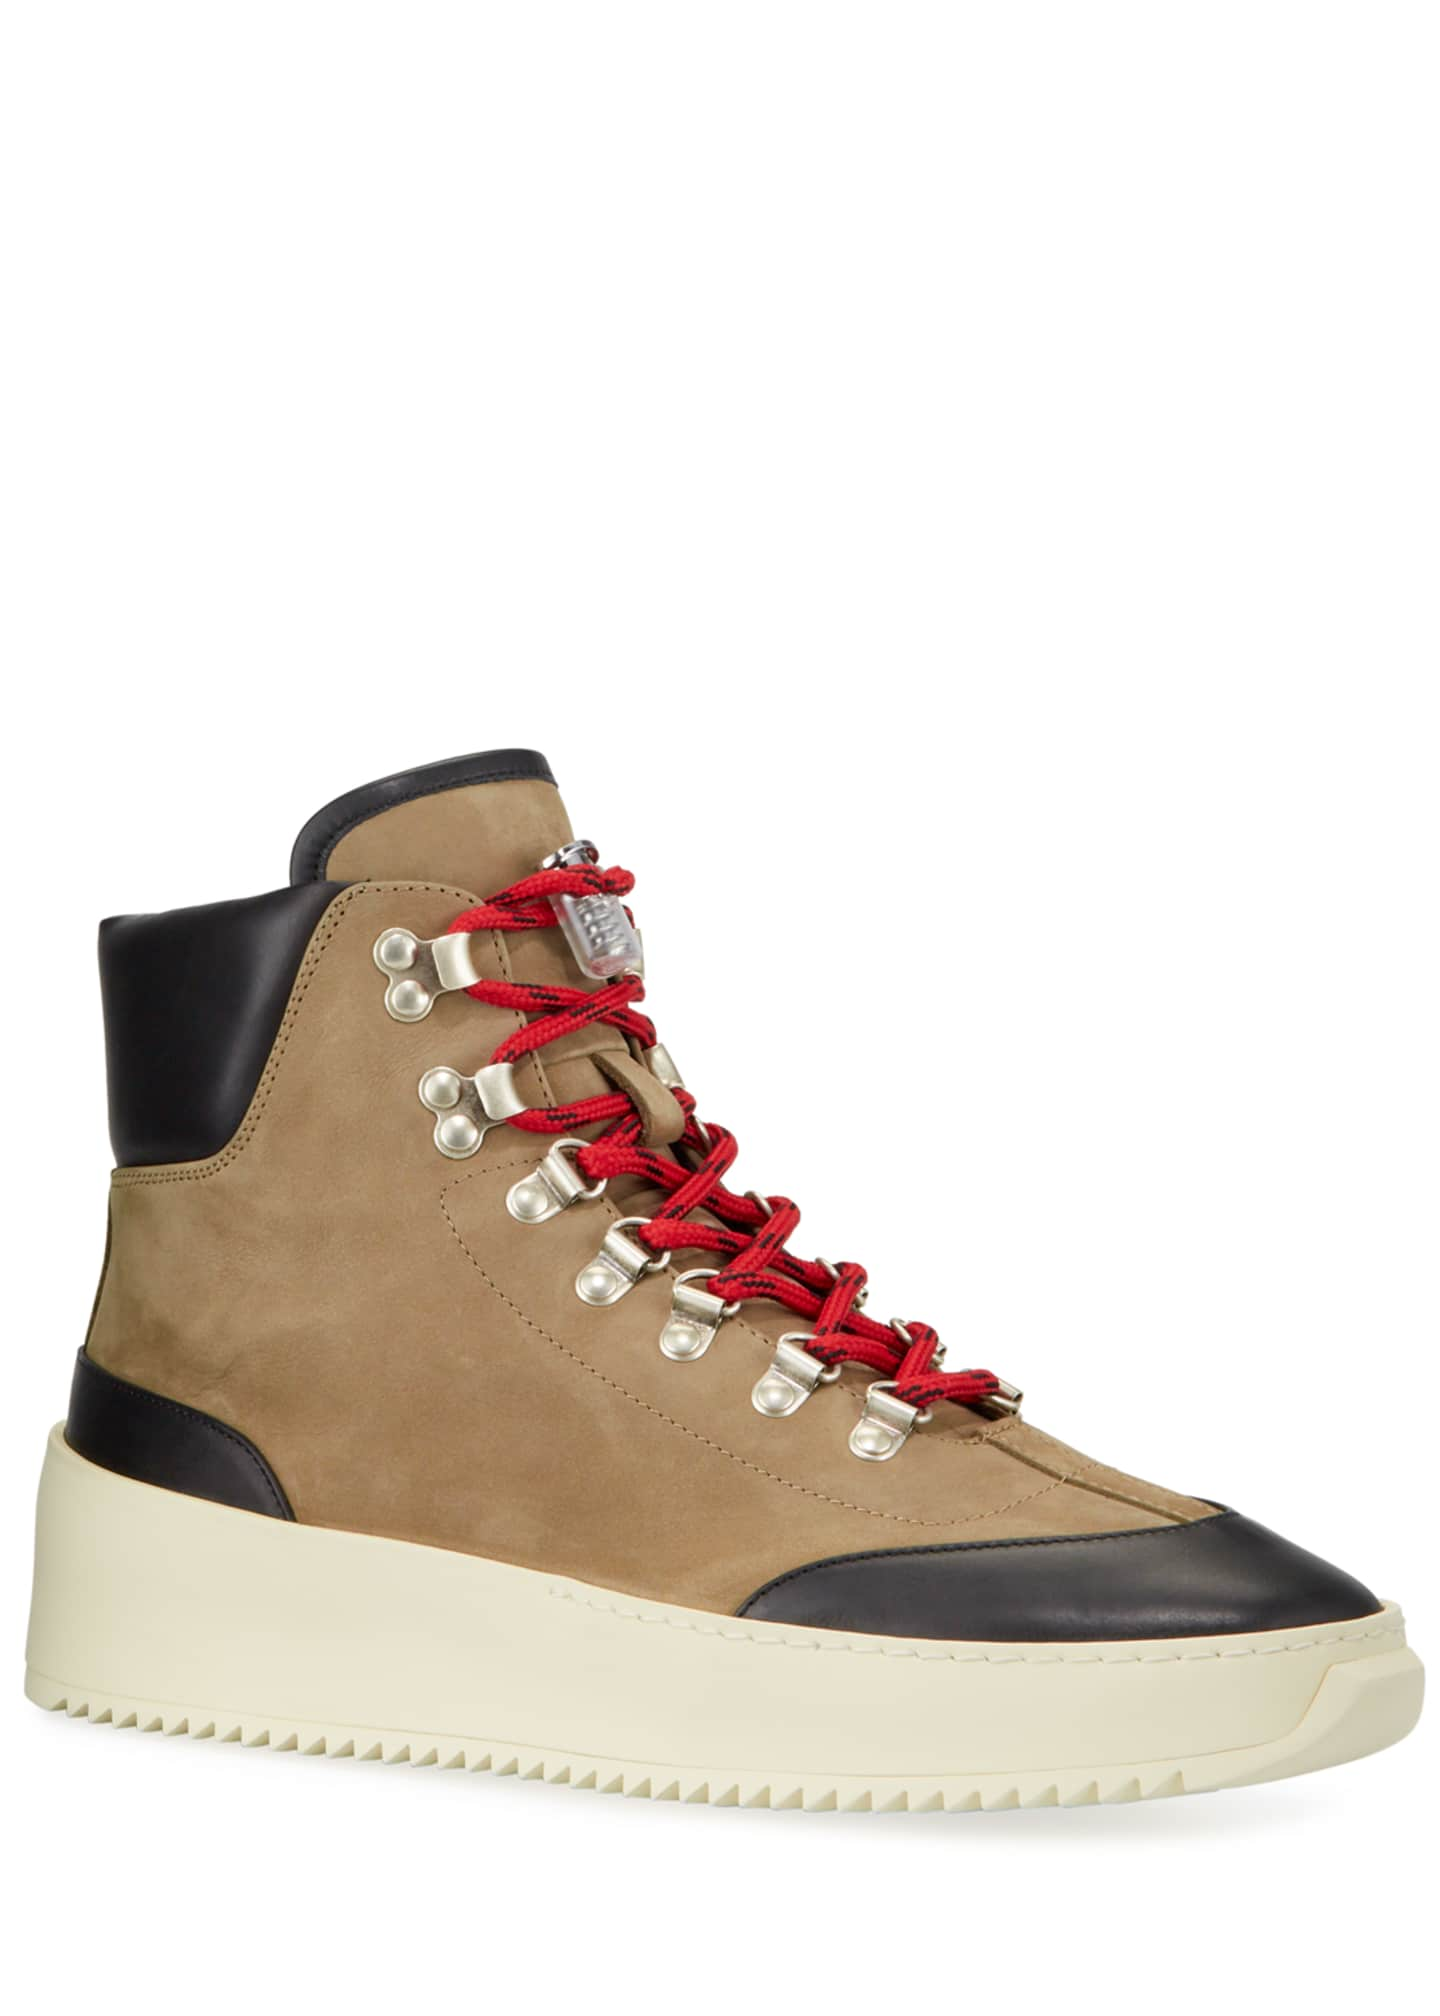 Fear of God Men's 6th Collection Suede Hiker